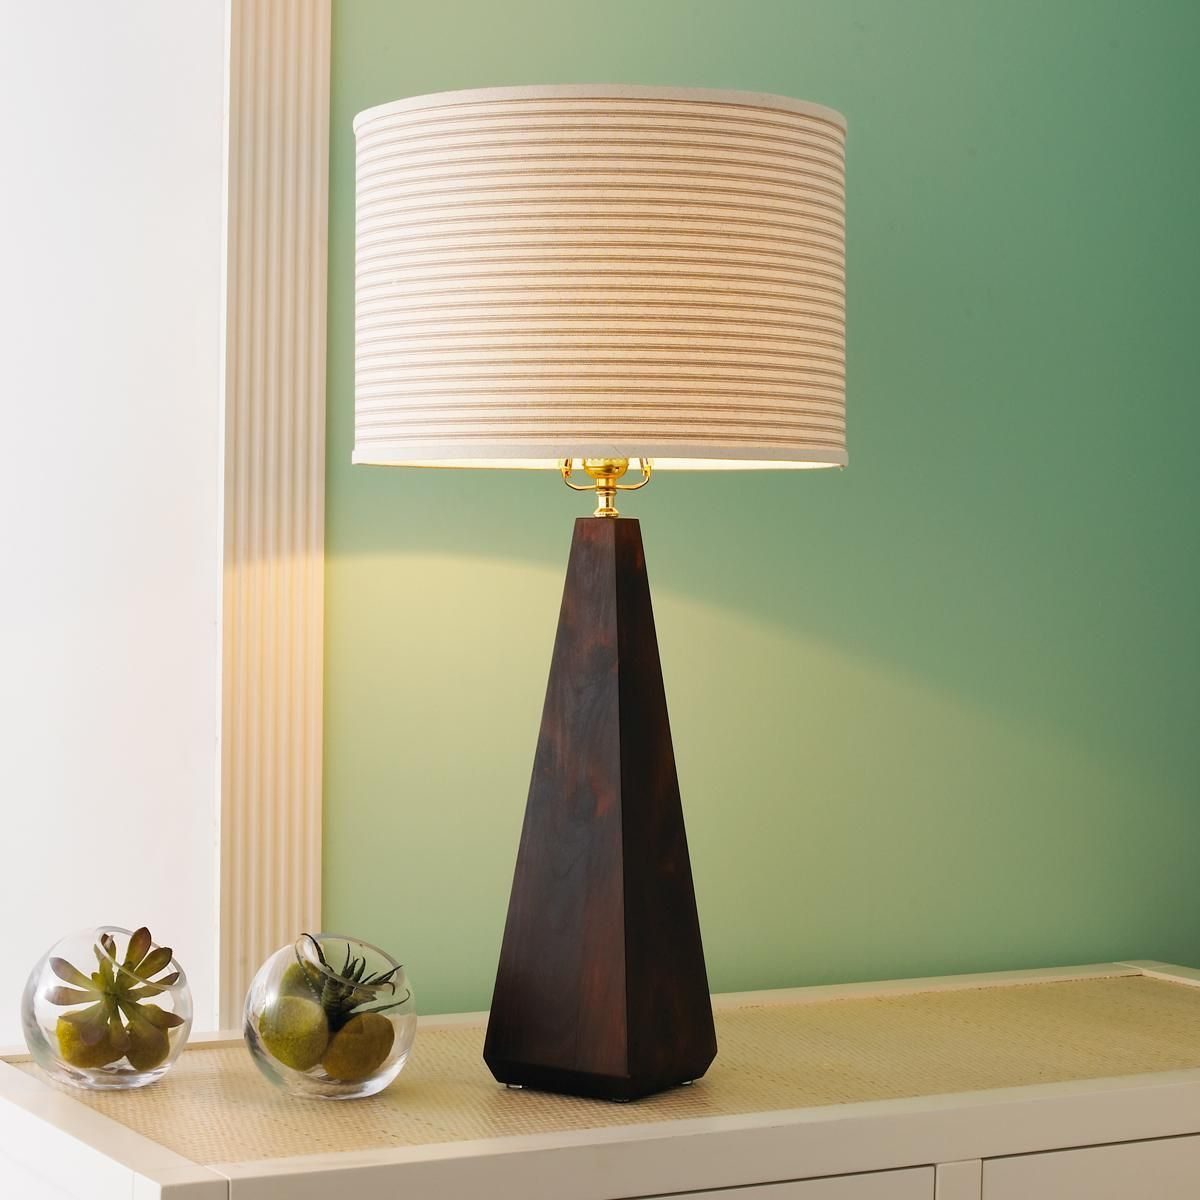 Artisan wood square pyramid lamp base different shade an whiskey glass shade drum table lamp by brooklyn lamps geotapseo Image collections